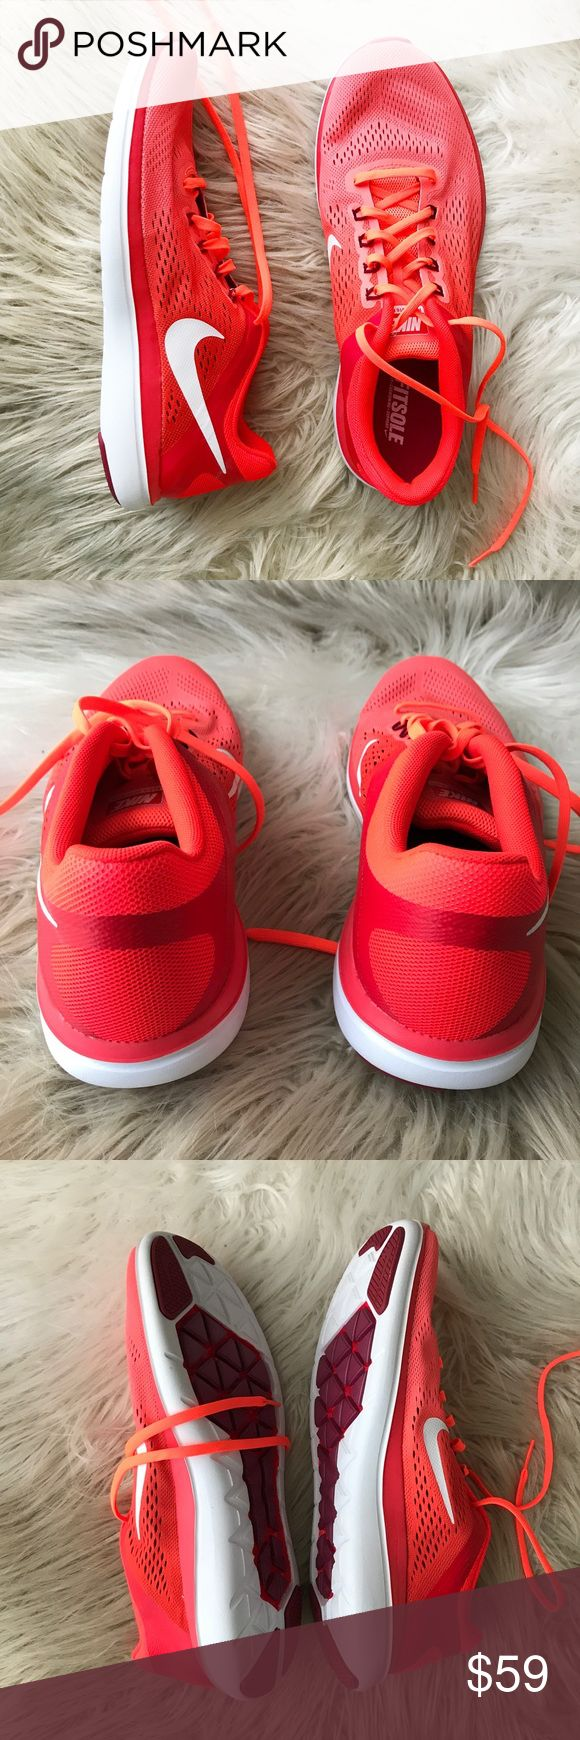 NWOT Nike Flex 2016 Run Mango Neon Running Shoes NWOT, never worn Nike running sneakers. Fitsole cushioning and padded heels and toes for extra comfort. Bright neon orange / Coral / and white colors // great pop of color at the gym and on the road! Nike Shoes Athletic Shoes